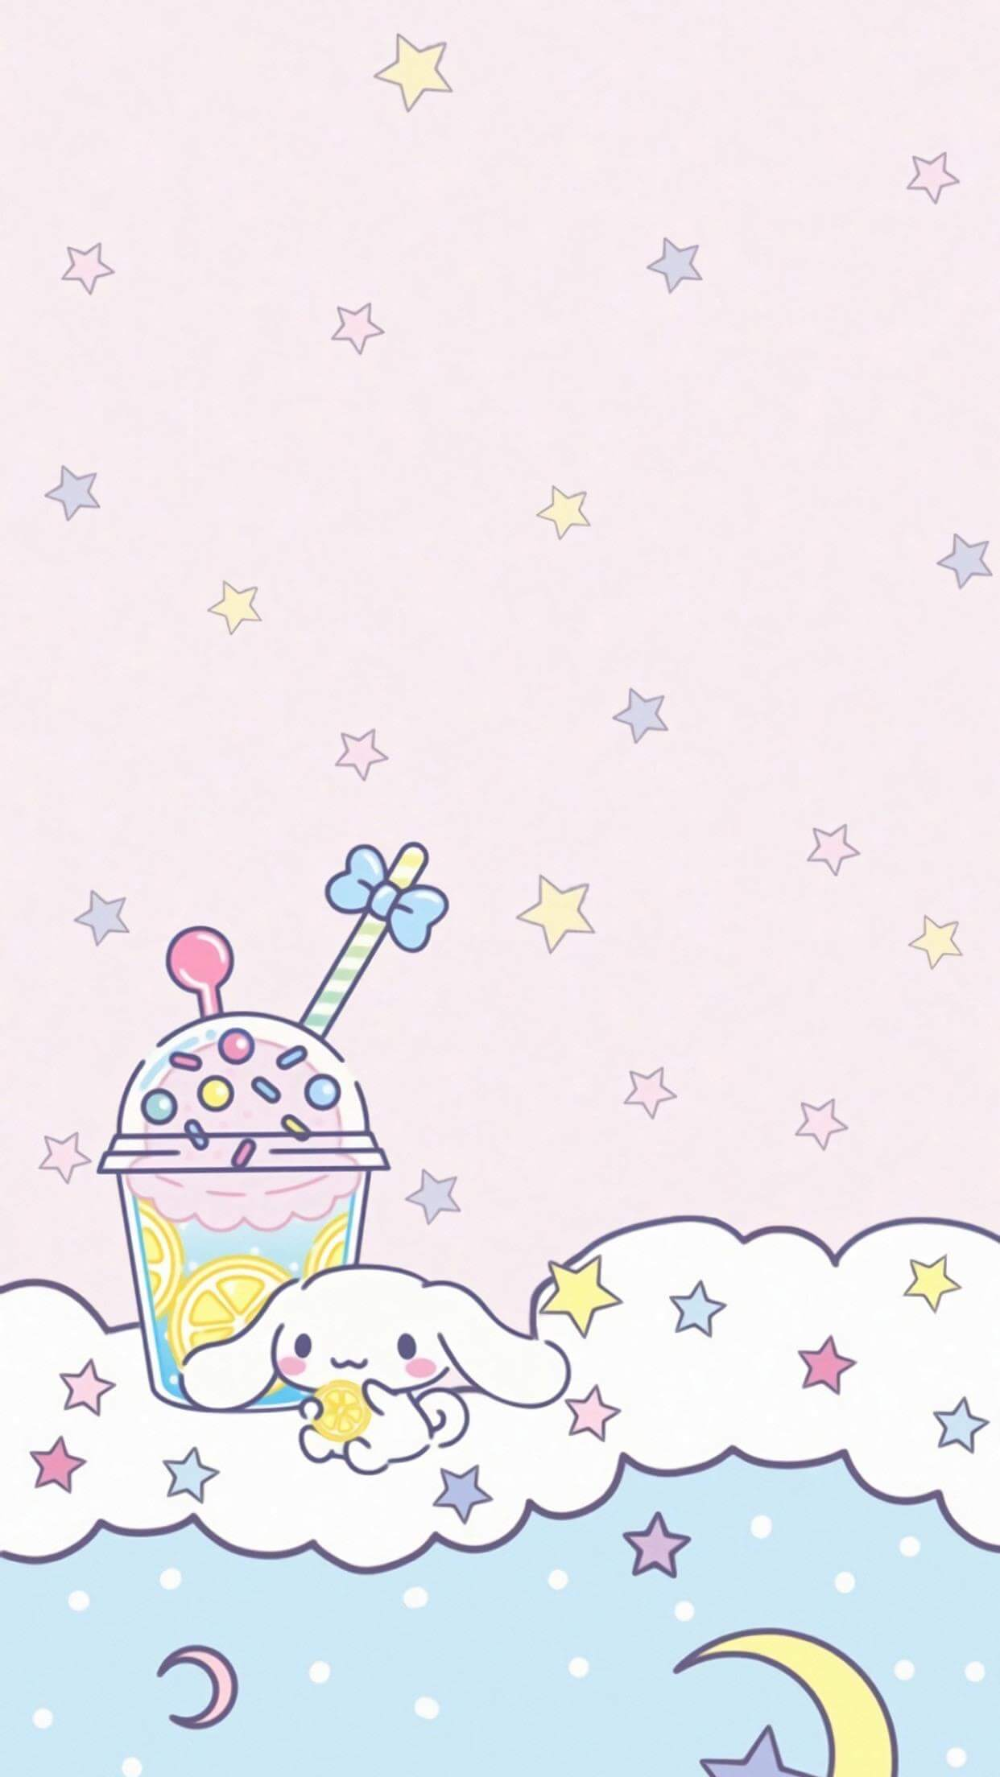 30 Cute Free Hd Phone Wallpaper You Will Love Ideasdonuts Unicorn Wallpaper Cute Iphone Wallpaper Kawaii Cute Mobile Wallpapers